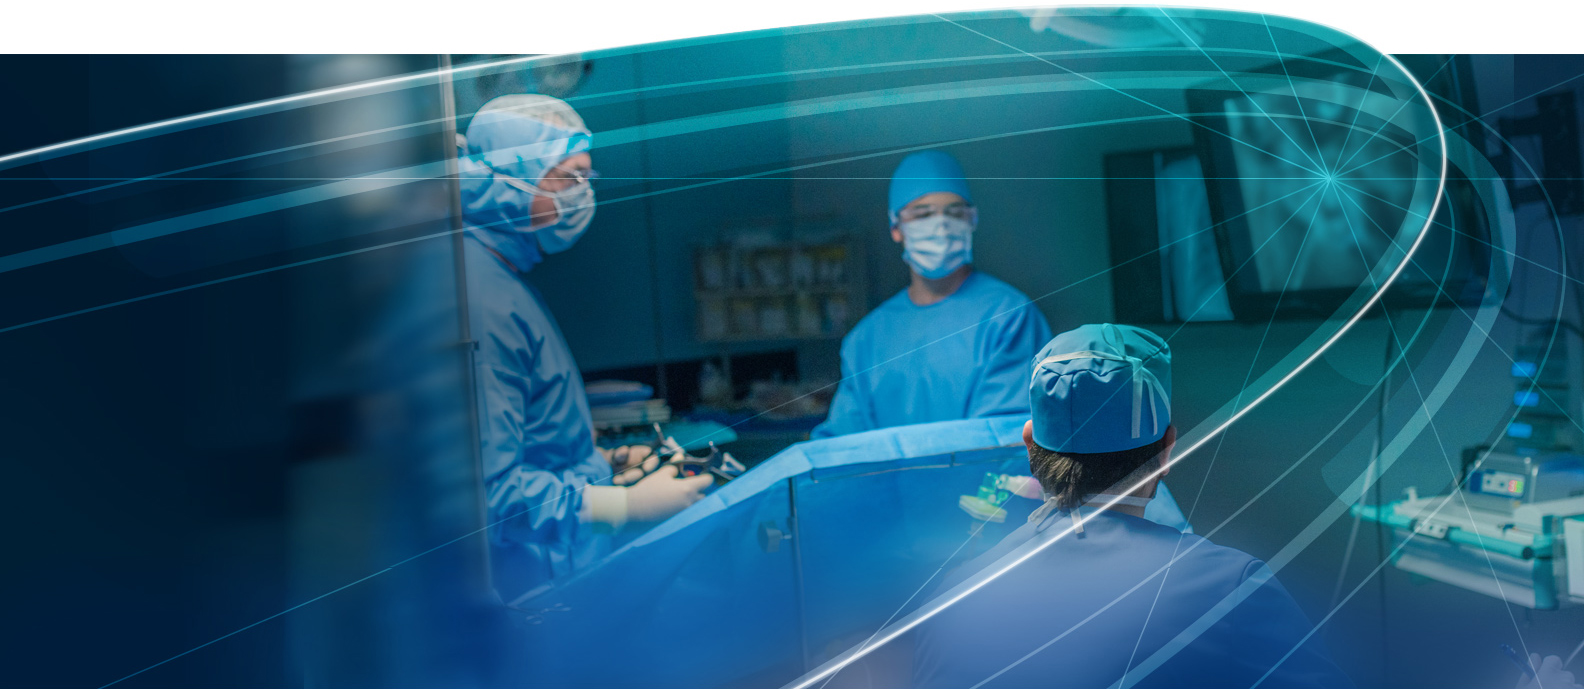 Real-Time Margin Measurement for Precision Cancer Surgery